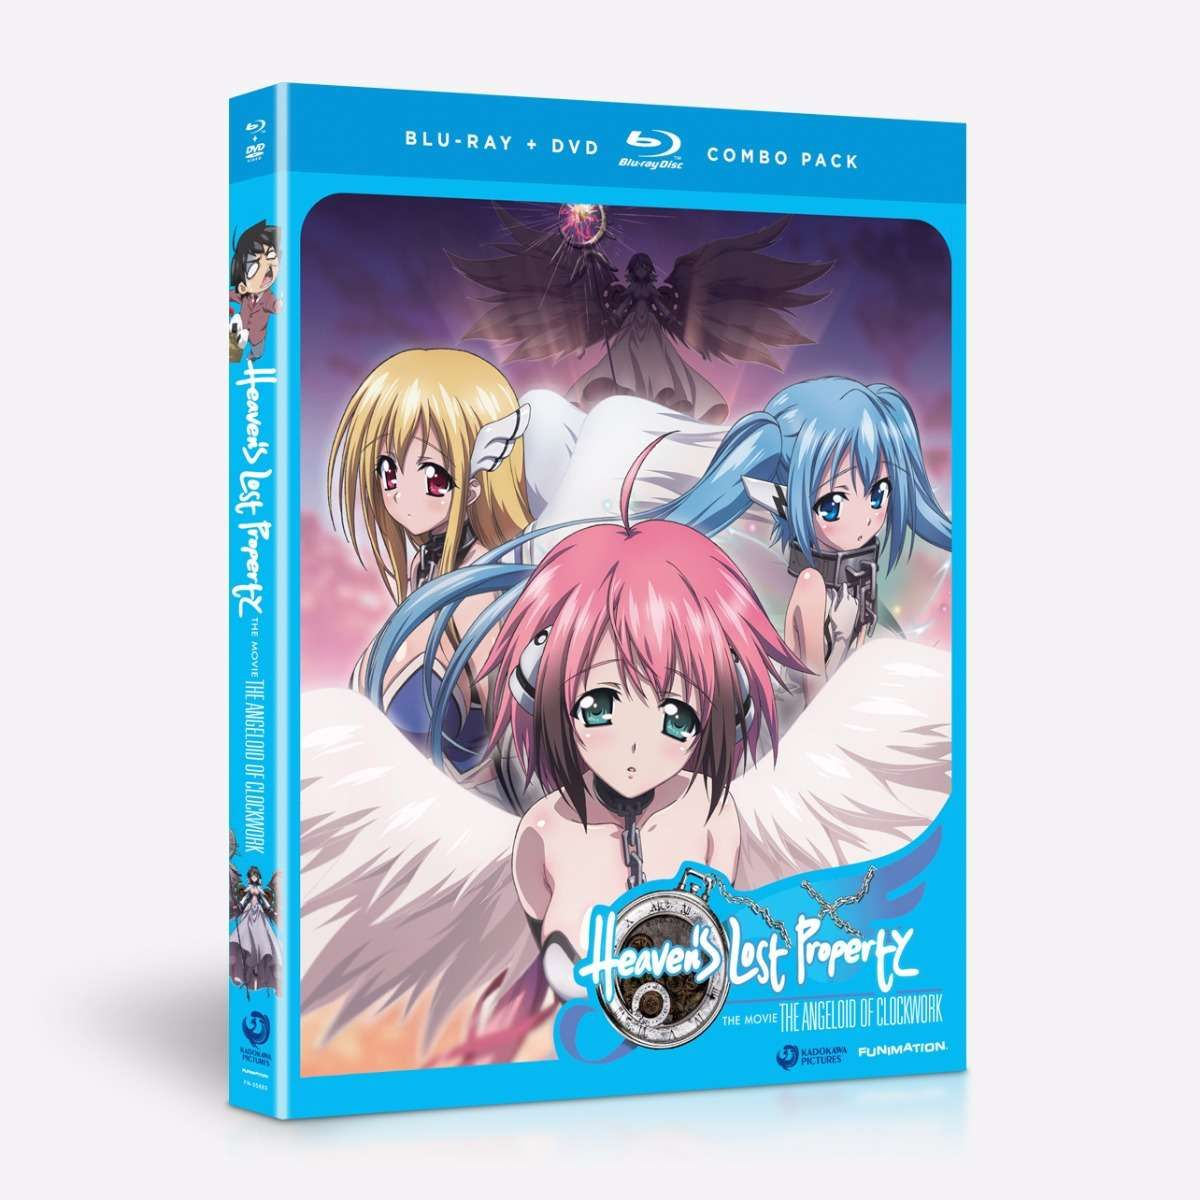 Heavens lost property the angeloid of clockwork home